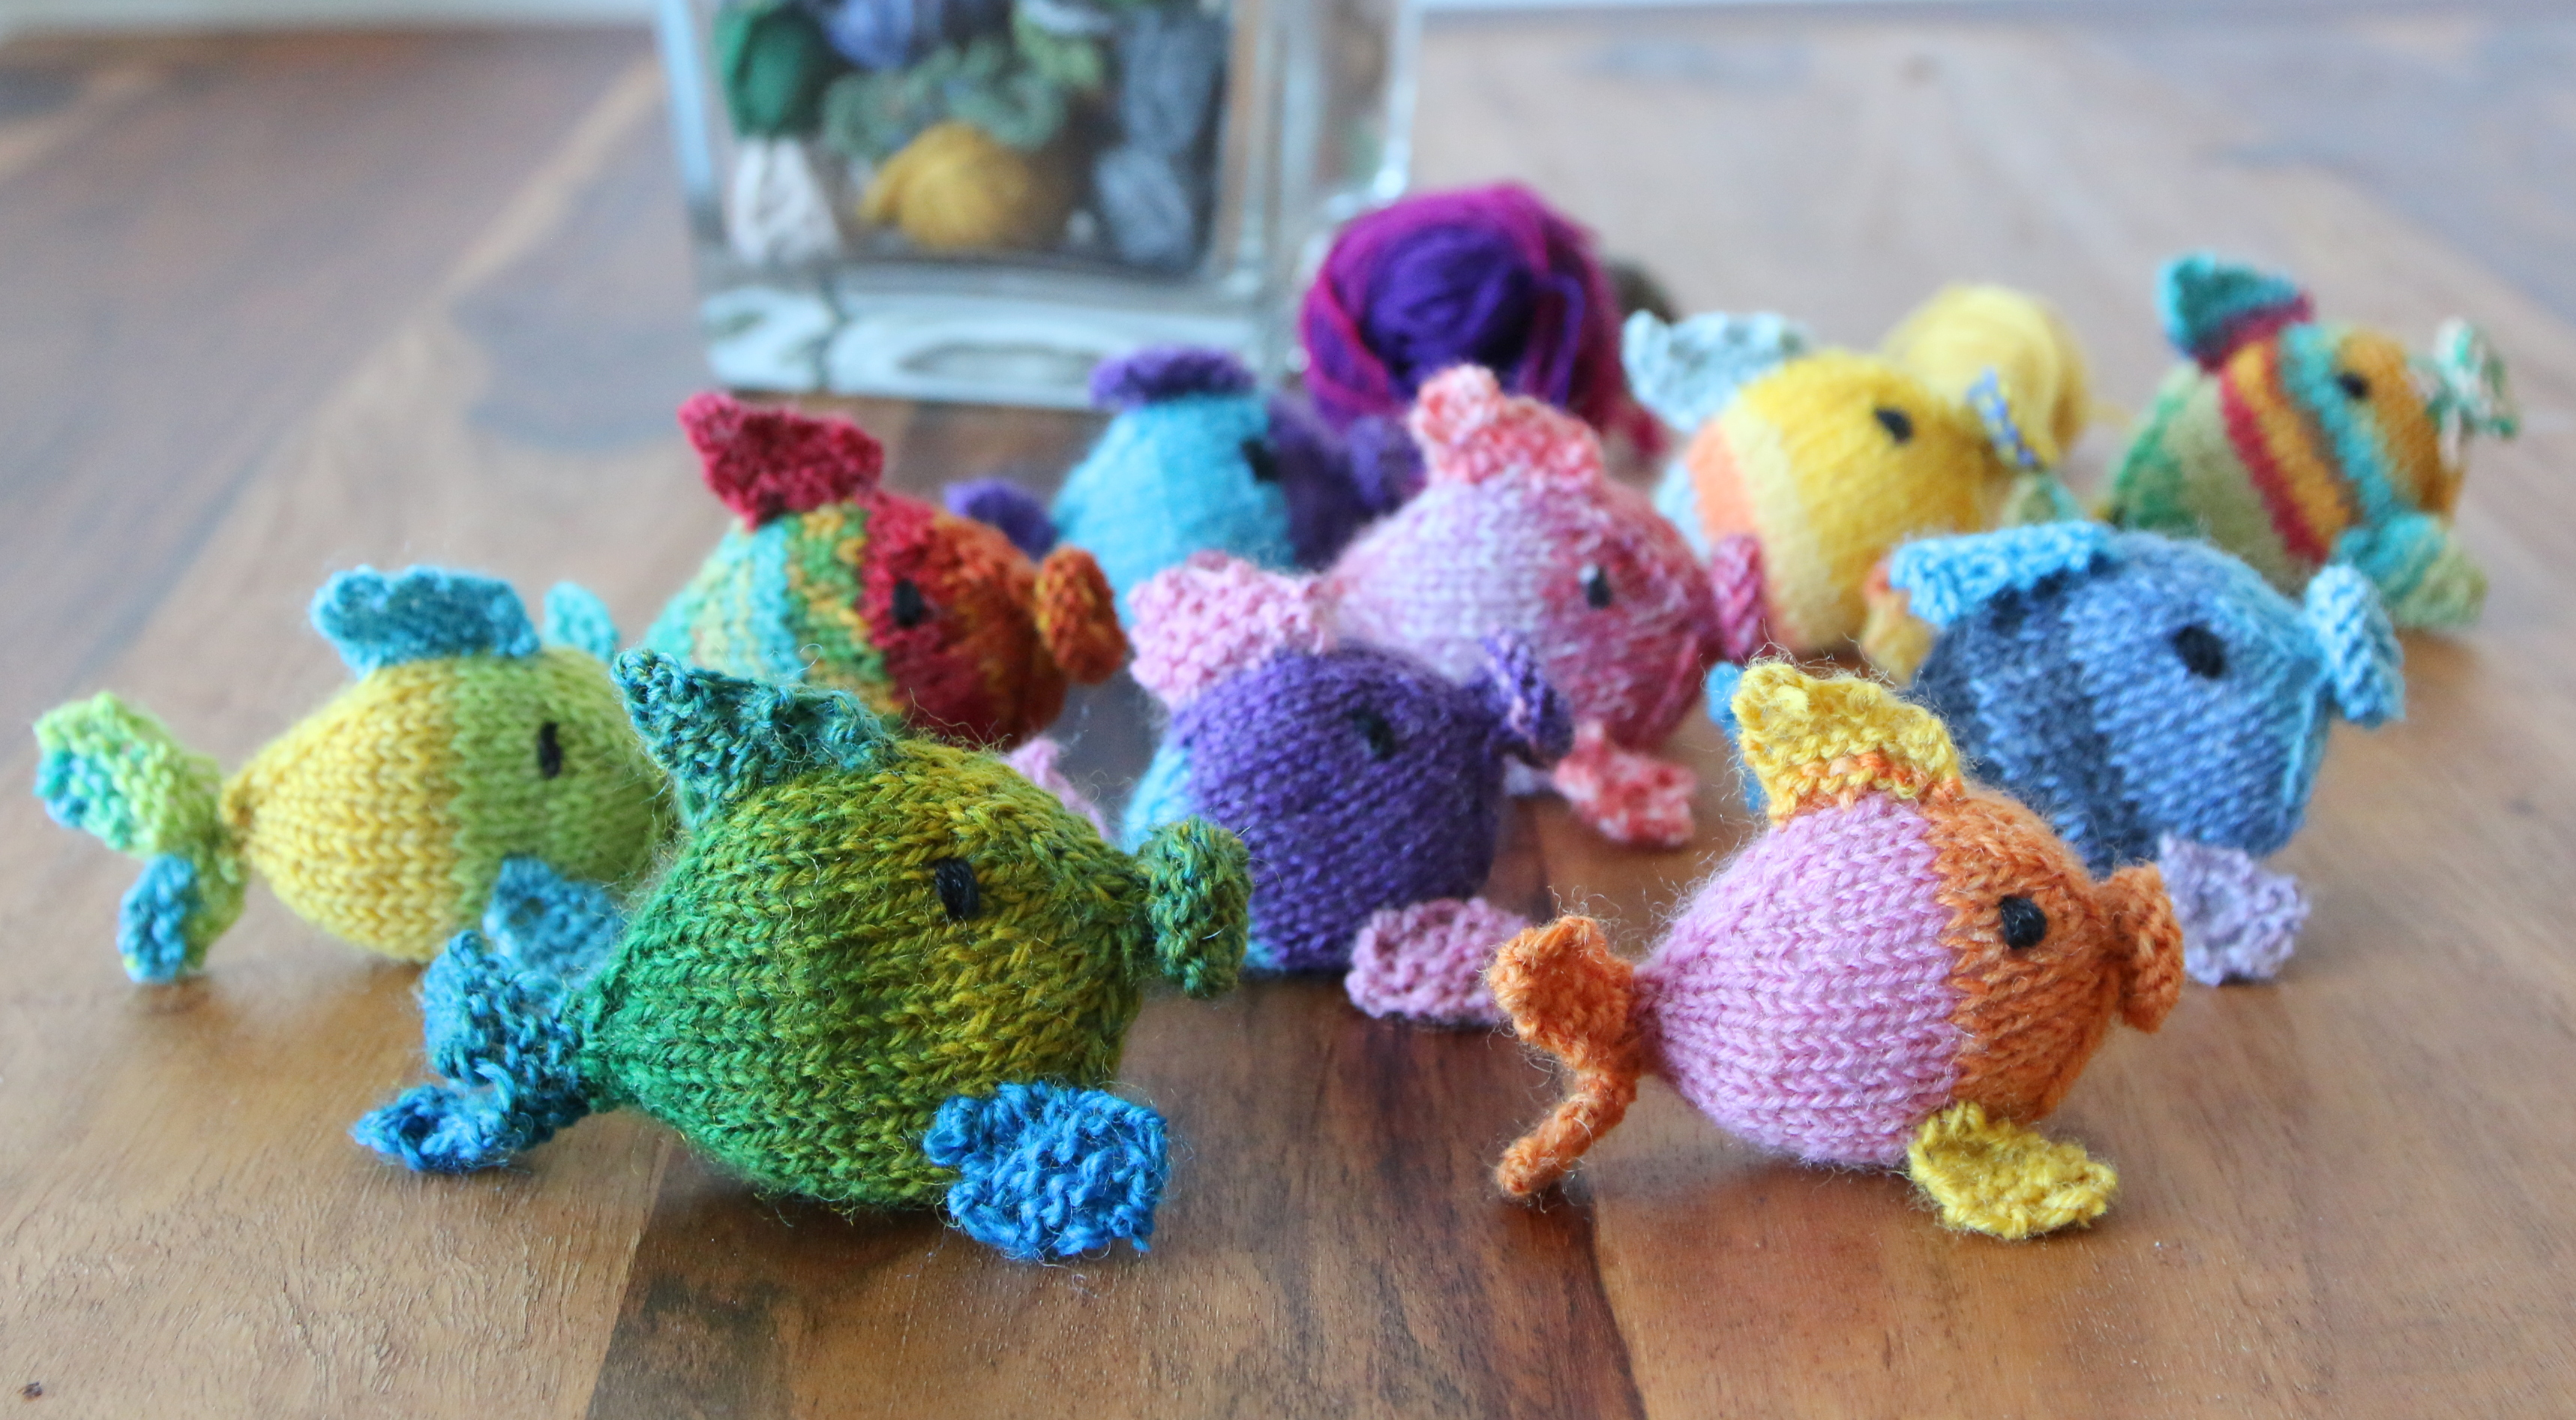 Knit Amigurumi fish pattern, ideal for your left overs